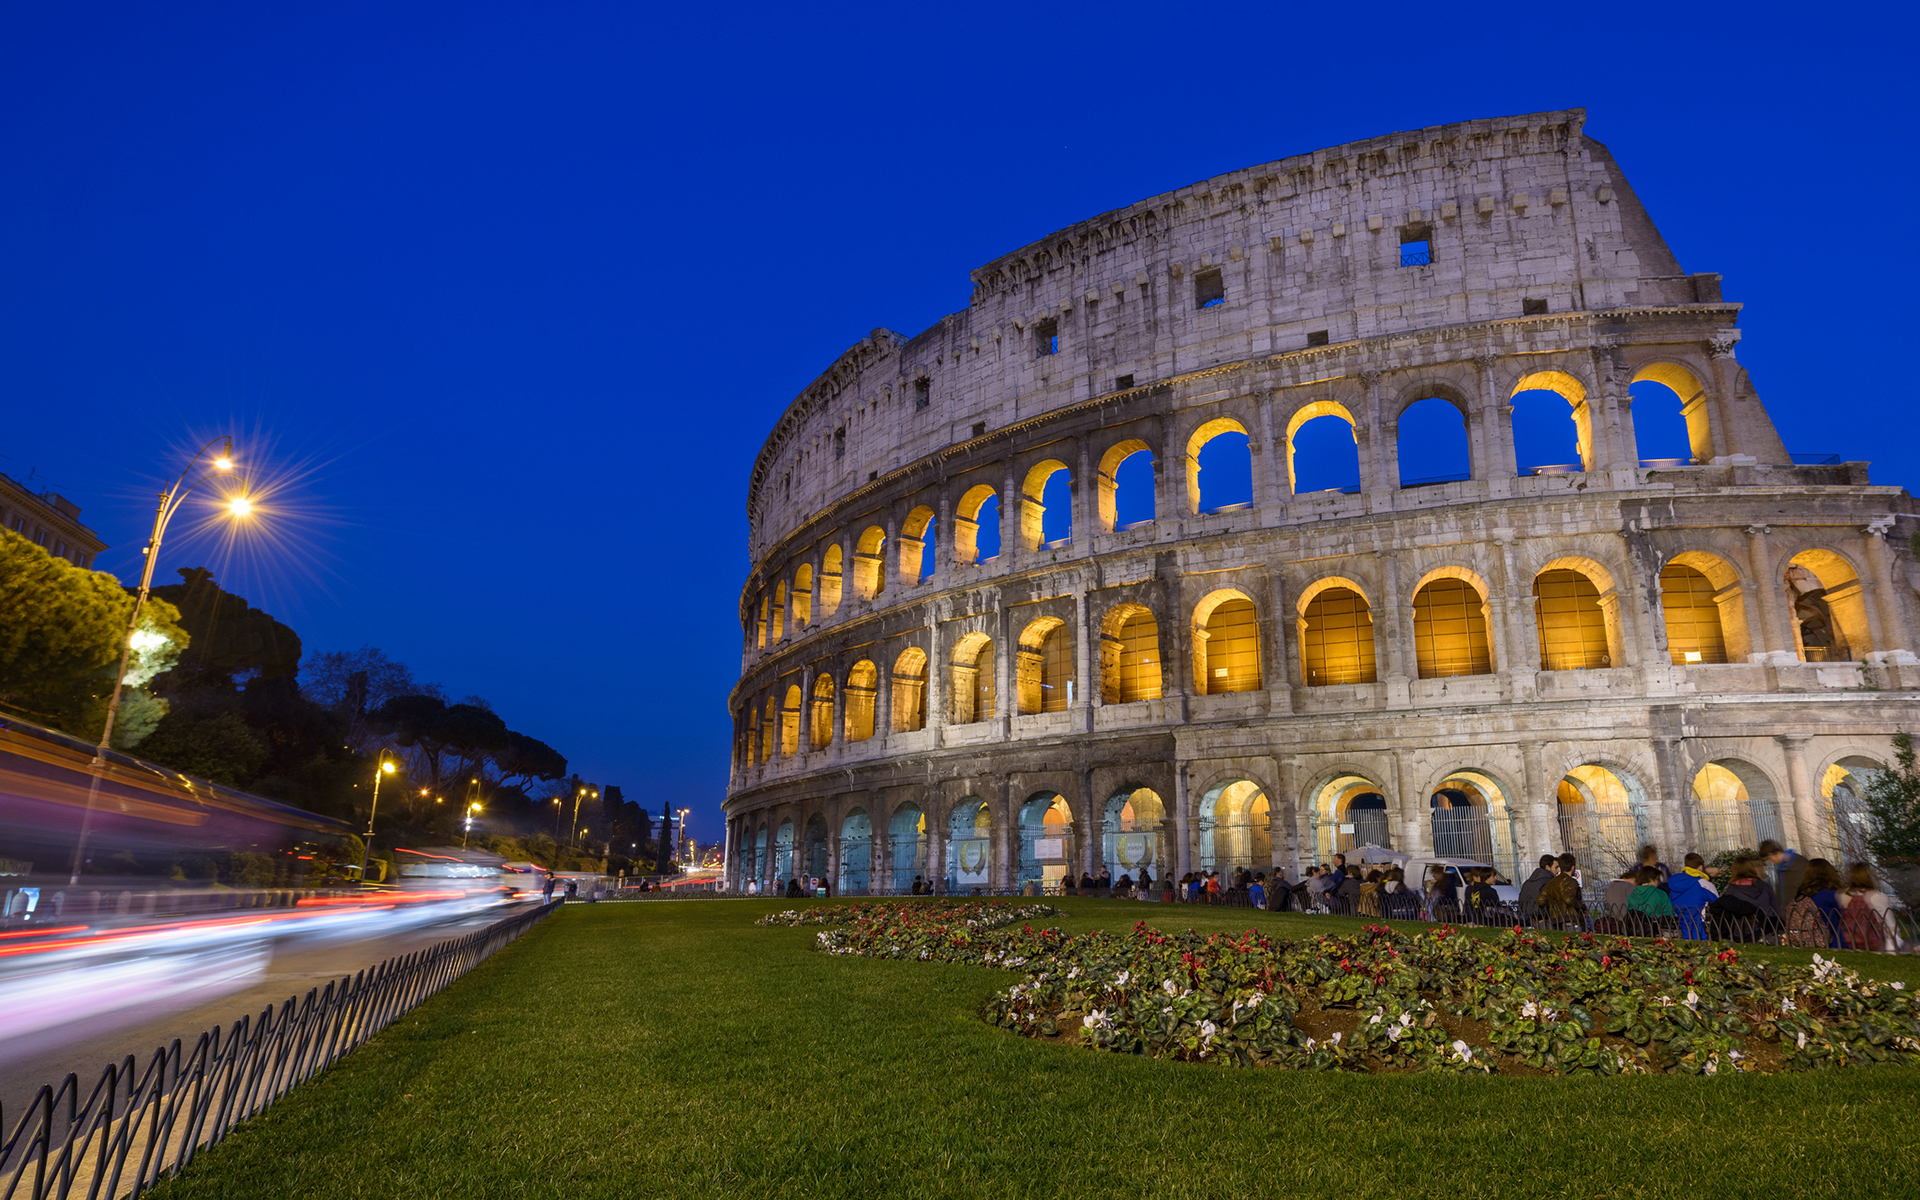 Beautiful Wallpaper Night Colosseum - 3a9263545380ab9345bfe7a08337630a  Trends.jpg